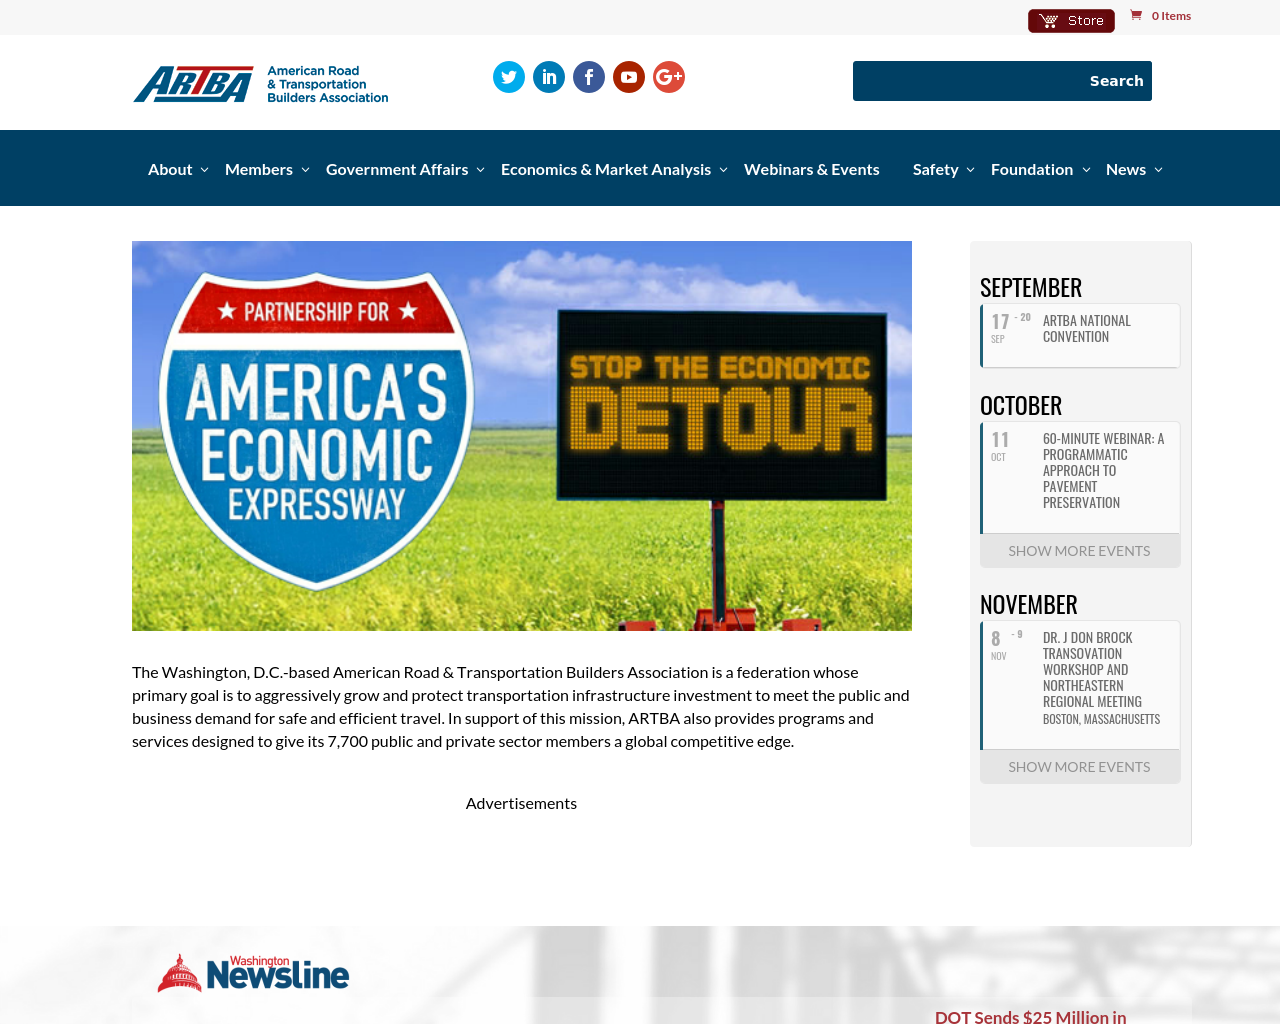 American-Road-&-Transportation-Builders-Association-Advertising-Reviews-Pricing